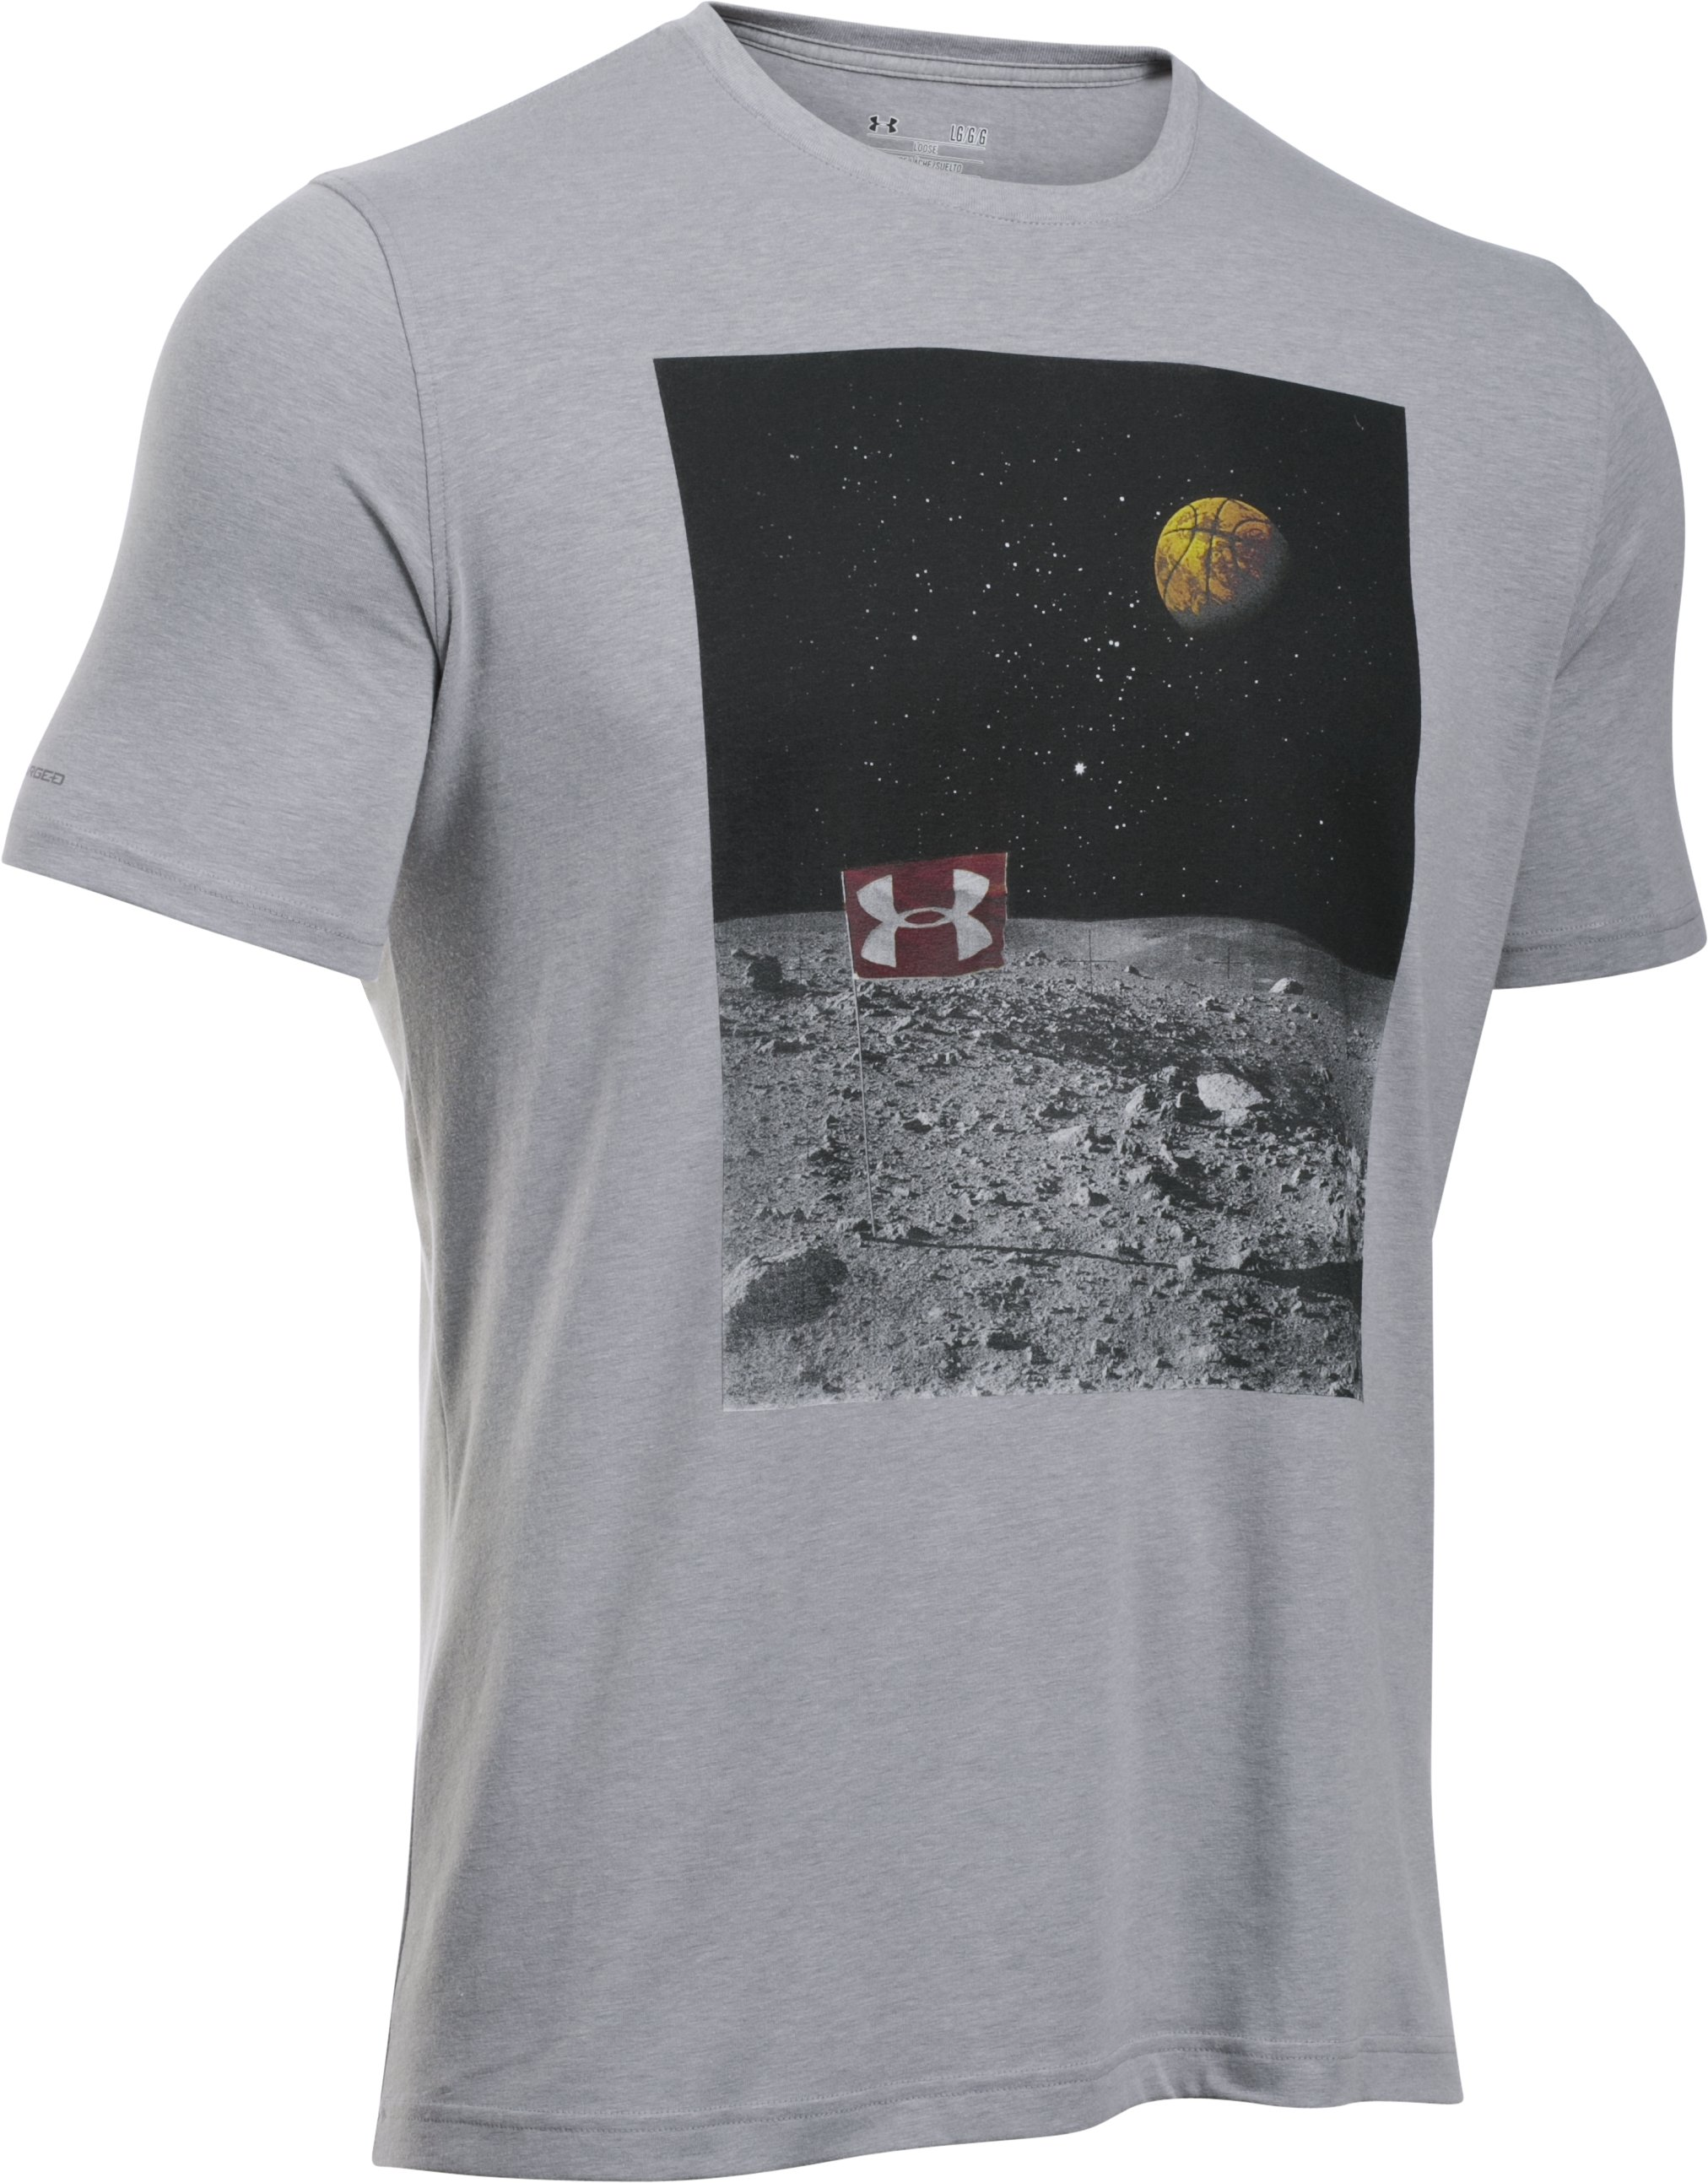 Men's UA Galaxy Game T-Shirt, True Gray Heather, undefined